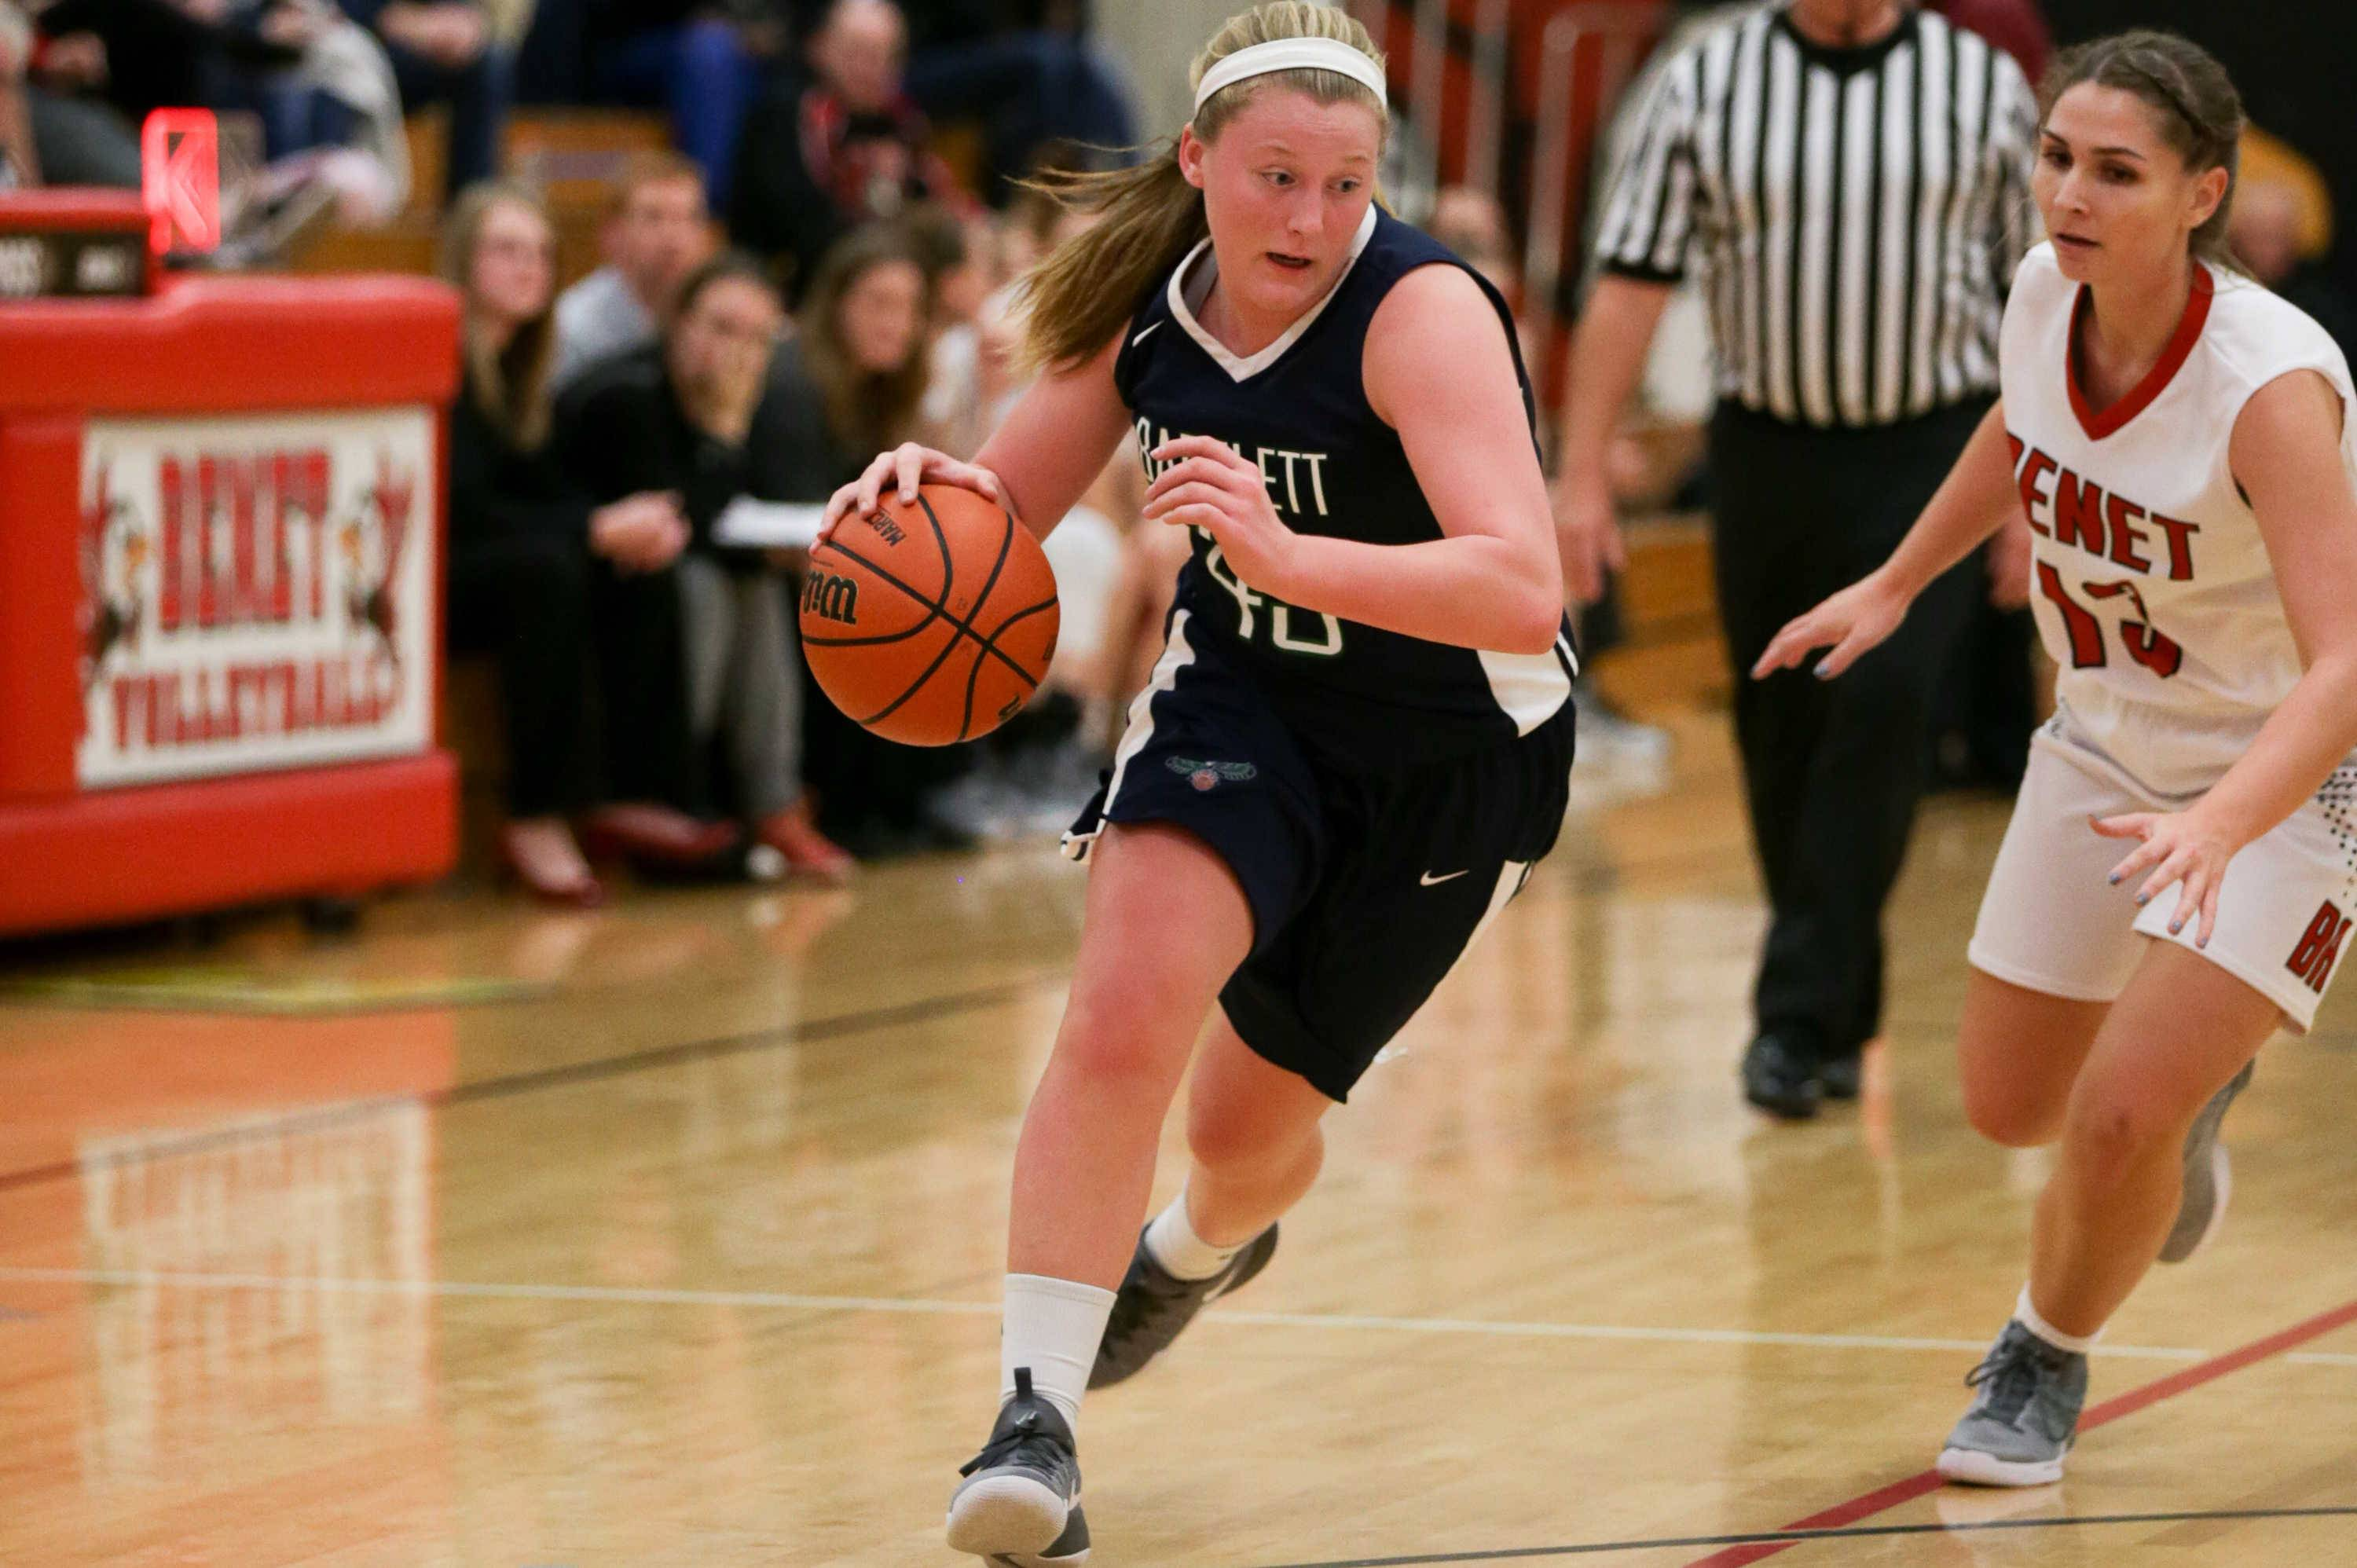 Bartlett Paige Bednarke (43) drives to the hoop against Benet forward Kate Heiberger (13) at Benet Academy in Lisle, IL on Friday, November 18, 2016